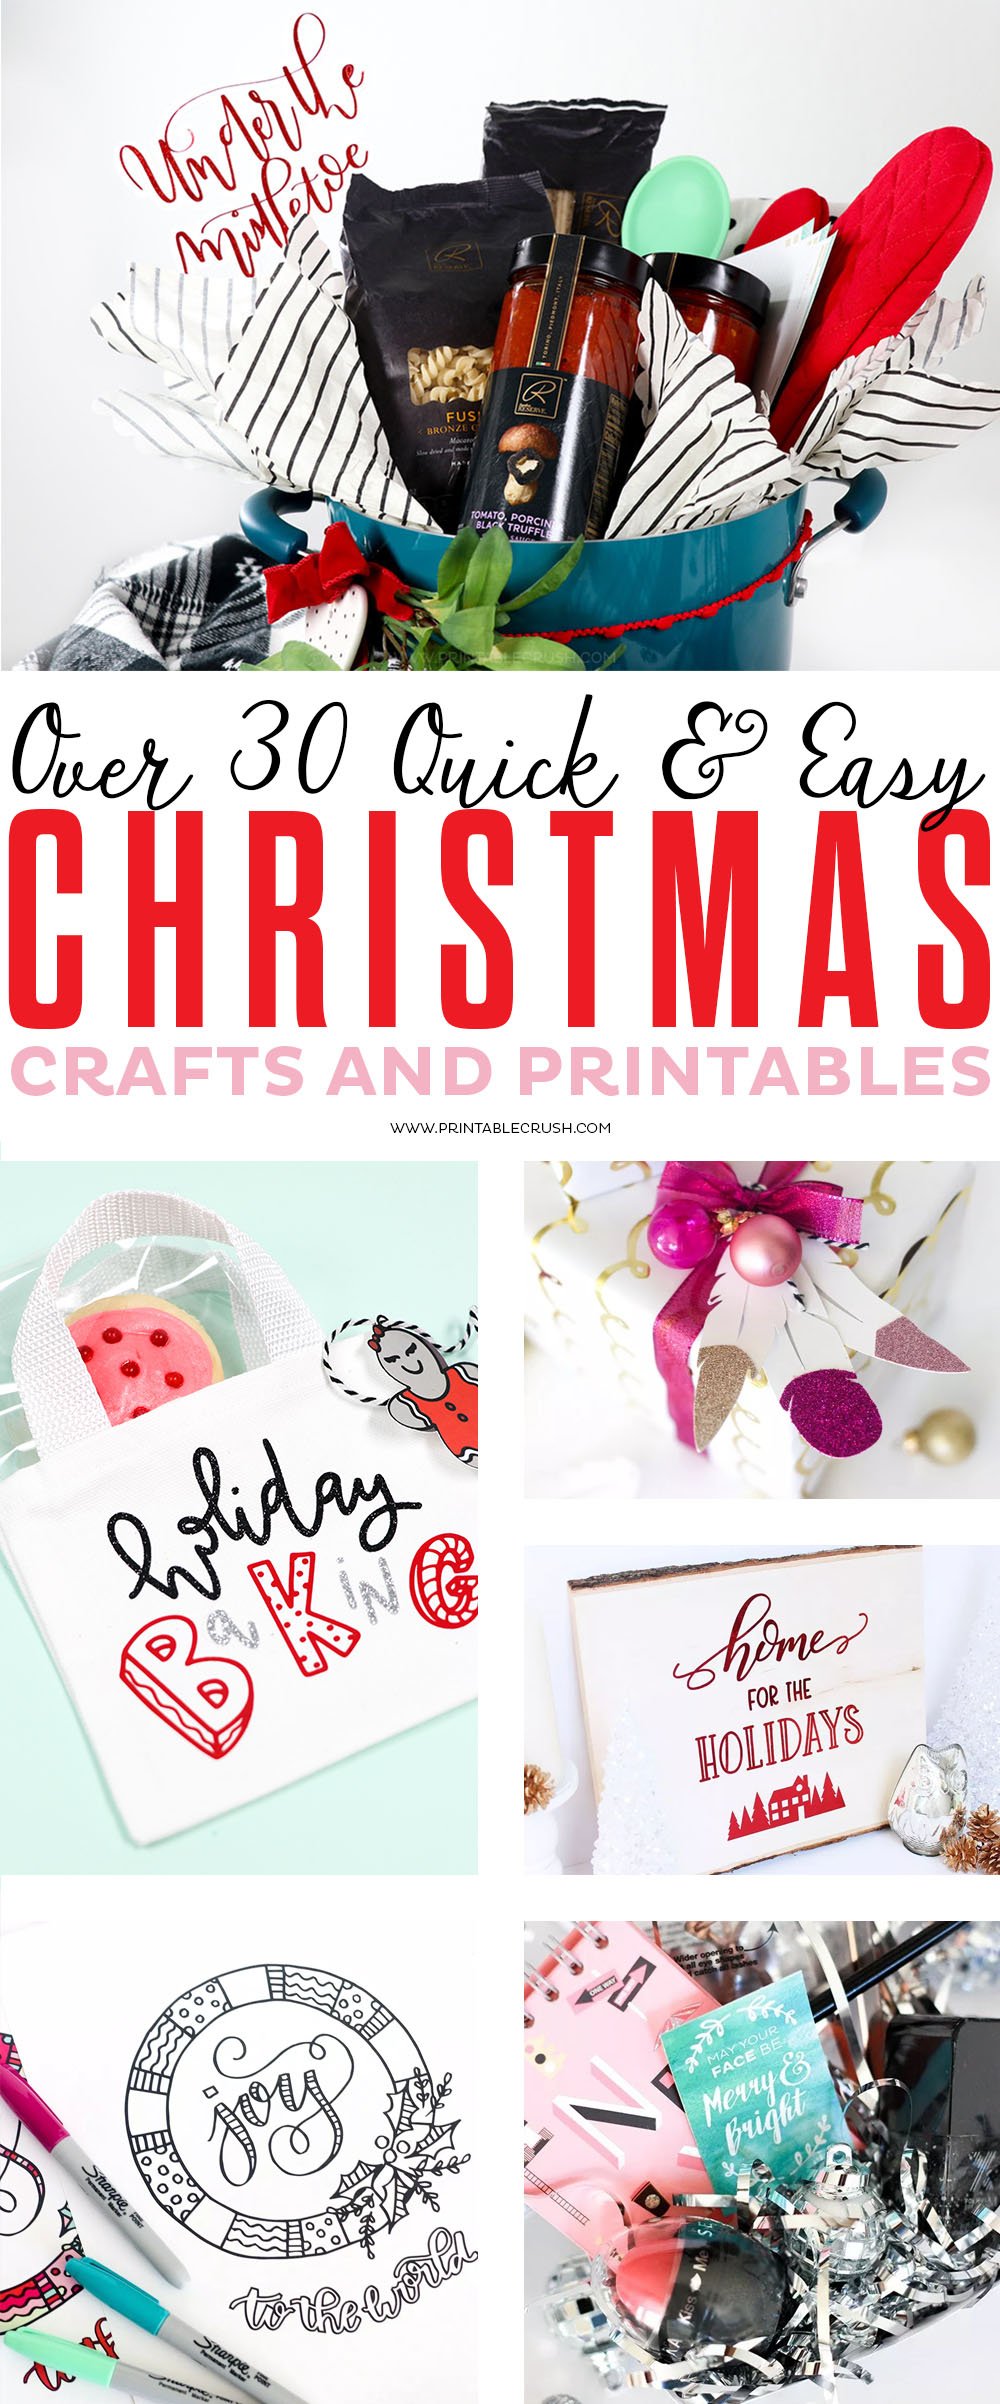 If Christmas is your favorite time of year, then check out over 30 Quick Christmas Crafts, Gift Ideas, and Printables!